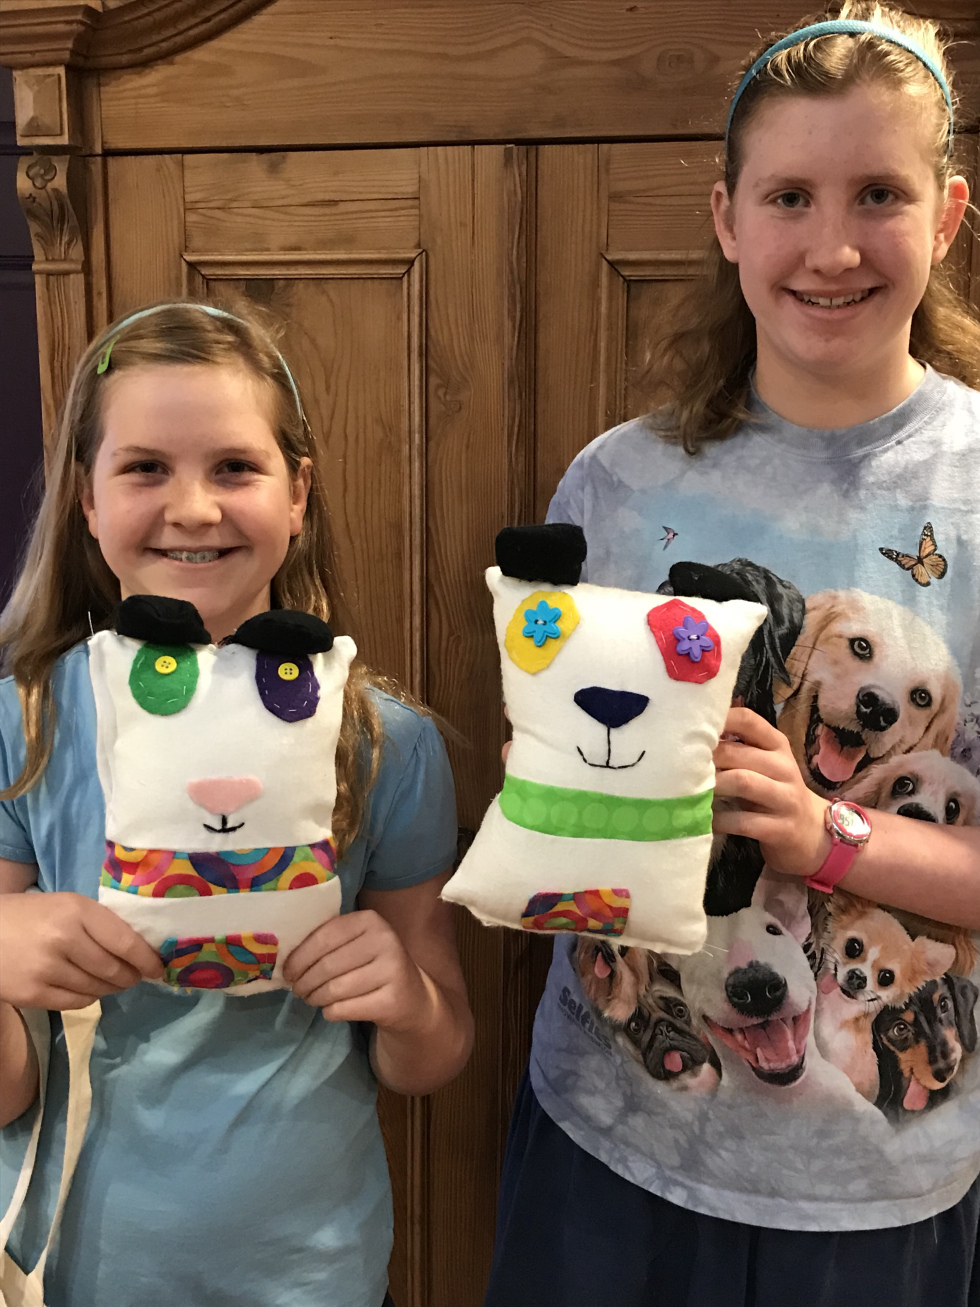 11 year old birthday party (with older sister) pandas!